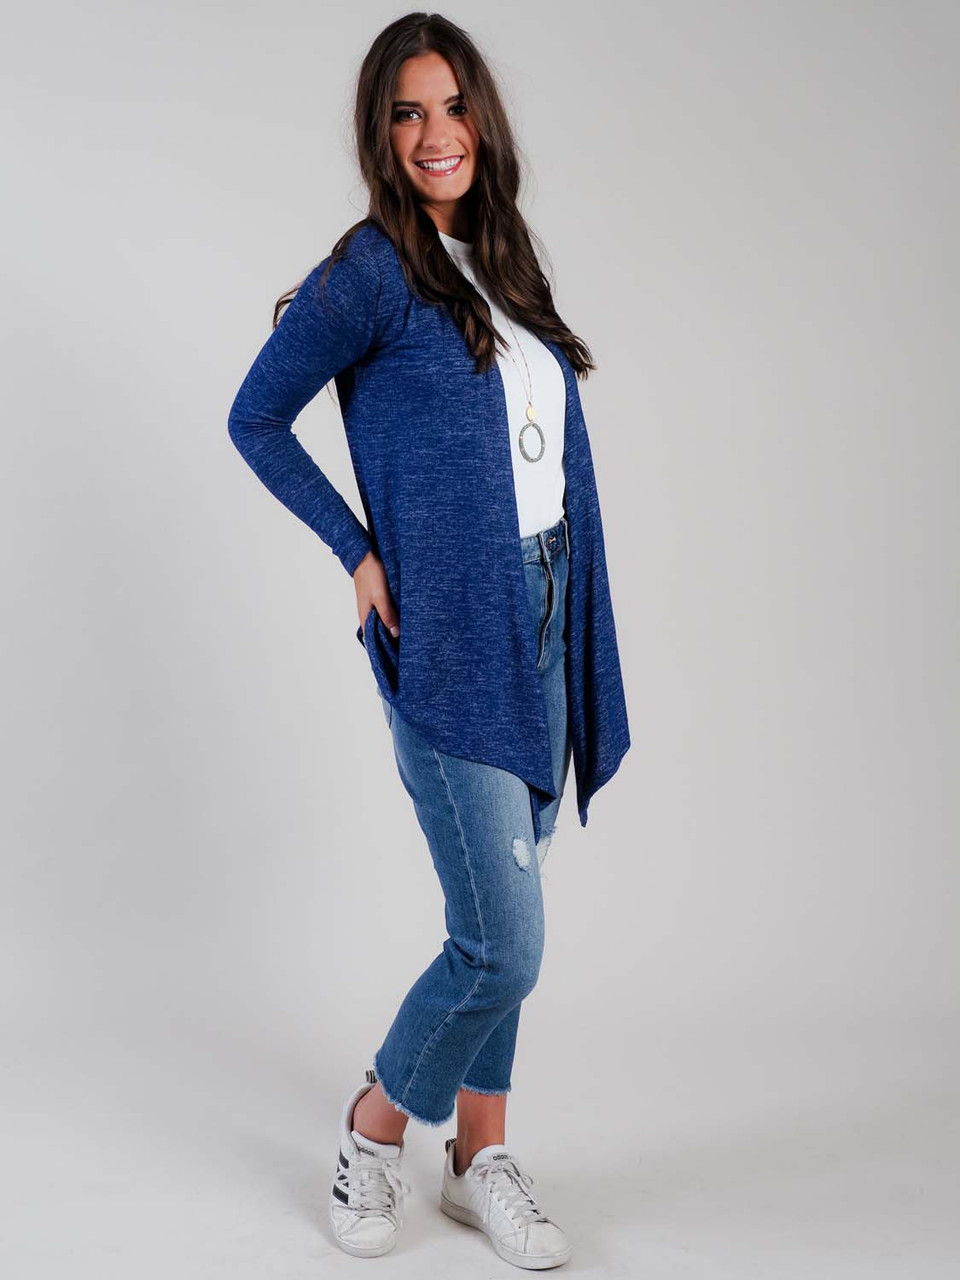 navy lightweight cardigan loungewear